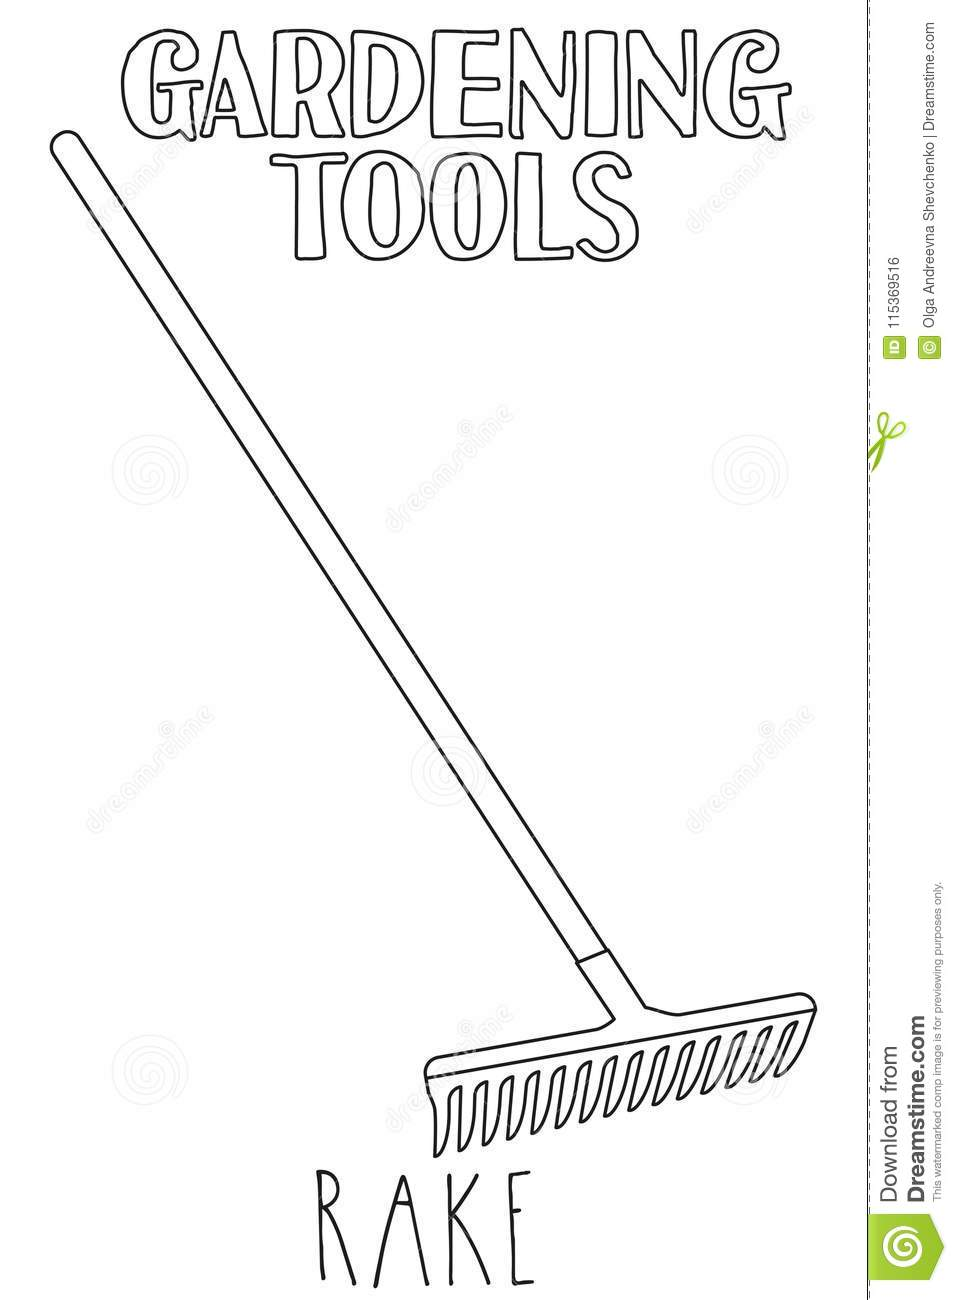 kids gardening tools coloring pages - photo#34